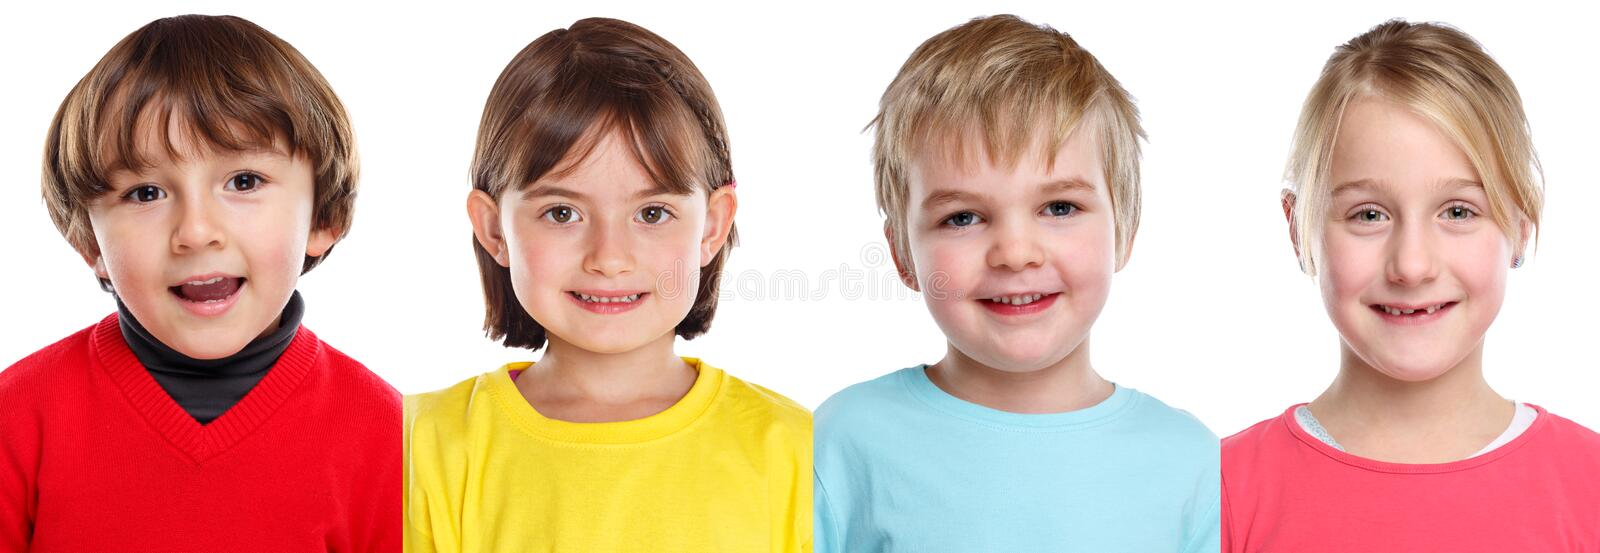 Children kids little girl boy portraits faces in a row isolated on white. Children kids little girl boy portraits faces in a row isolated on a white background royalty free stock photography